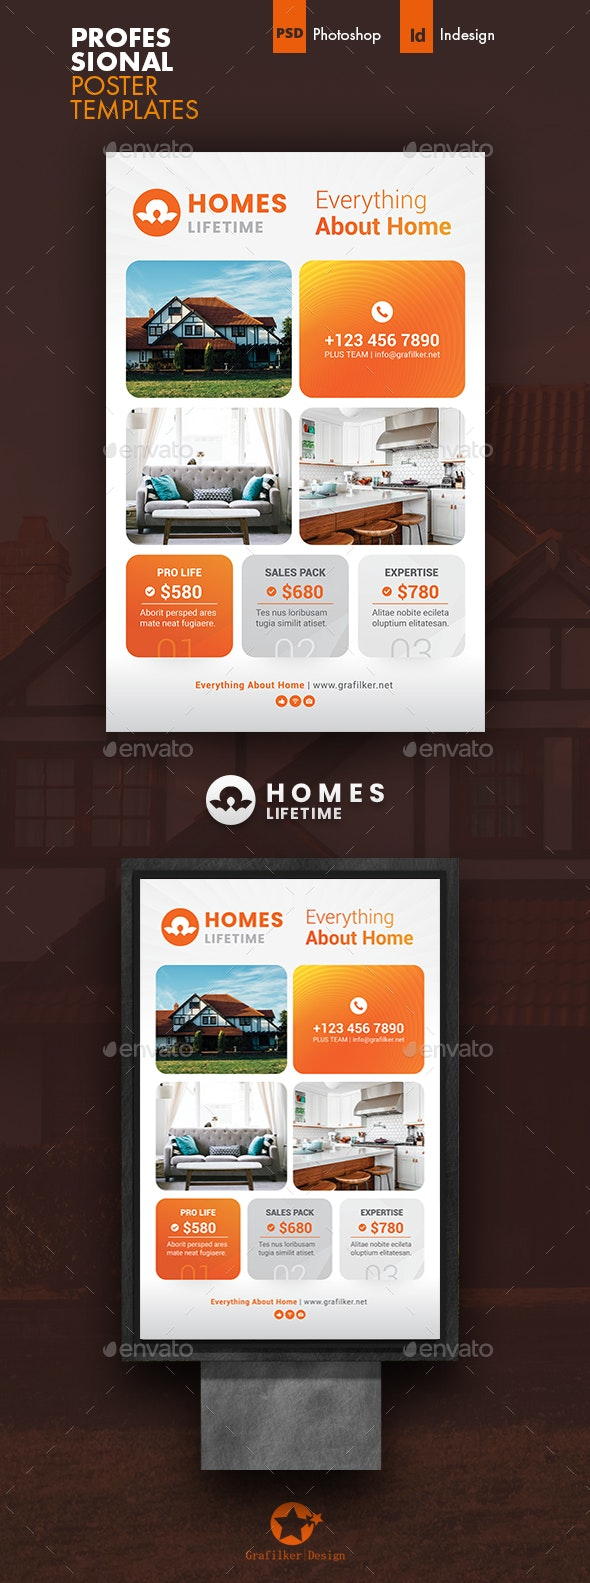 Real Estate Poster Templates - Signage Print Templates